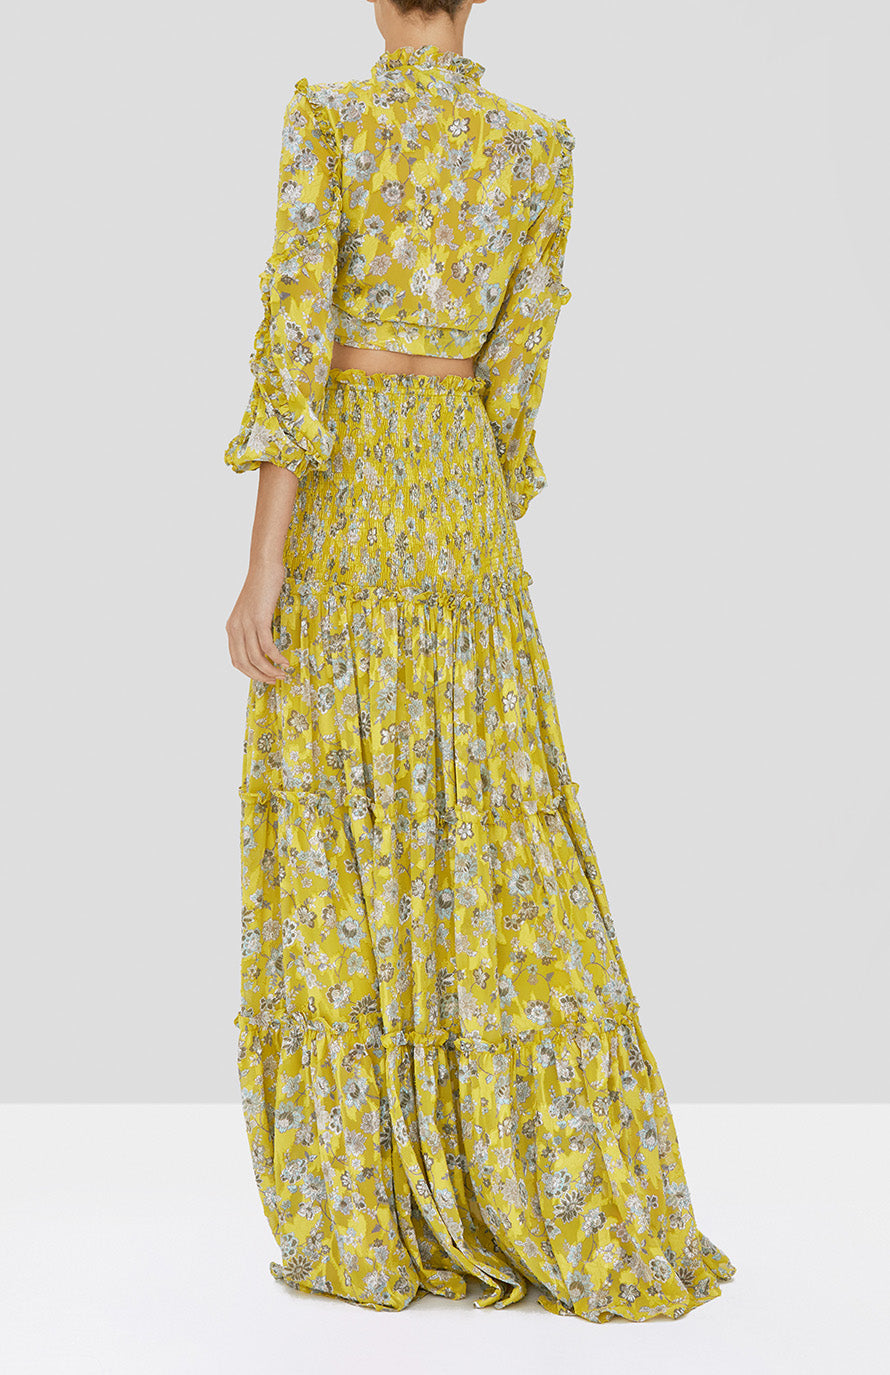 Alexis Odilo Top and Galarza Skirt in Citron Floral from our Pre-Spring 2020 Ready To Wear Collection - Rear View